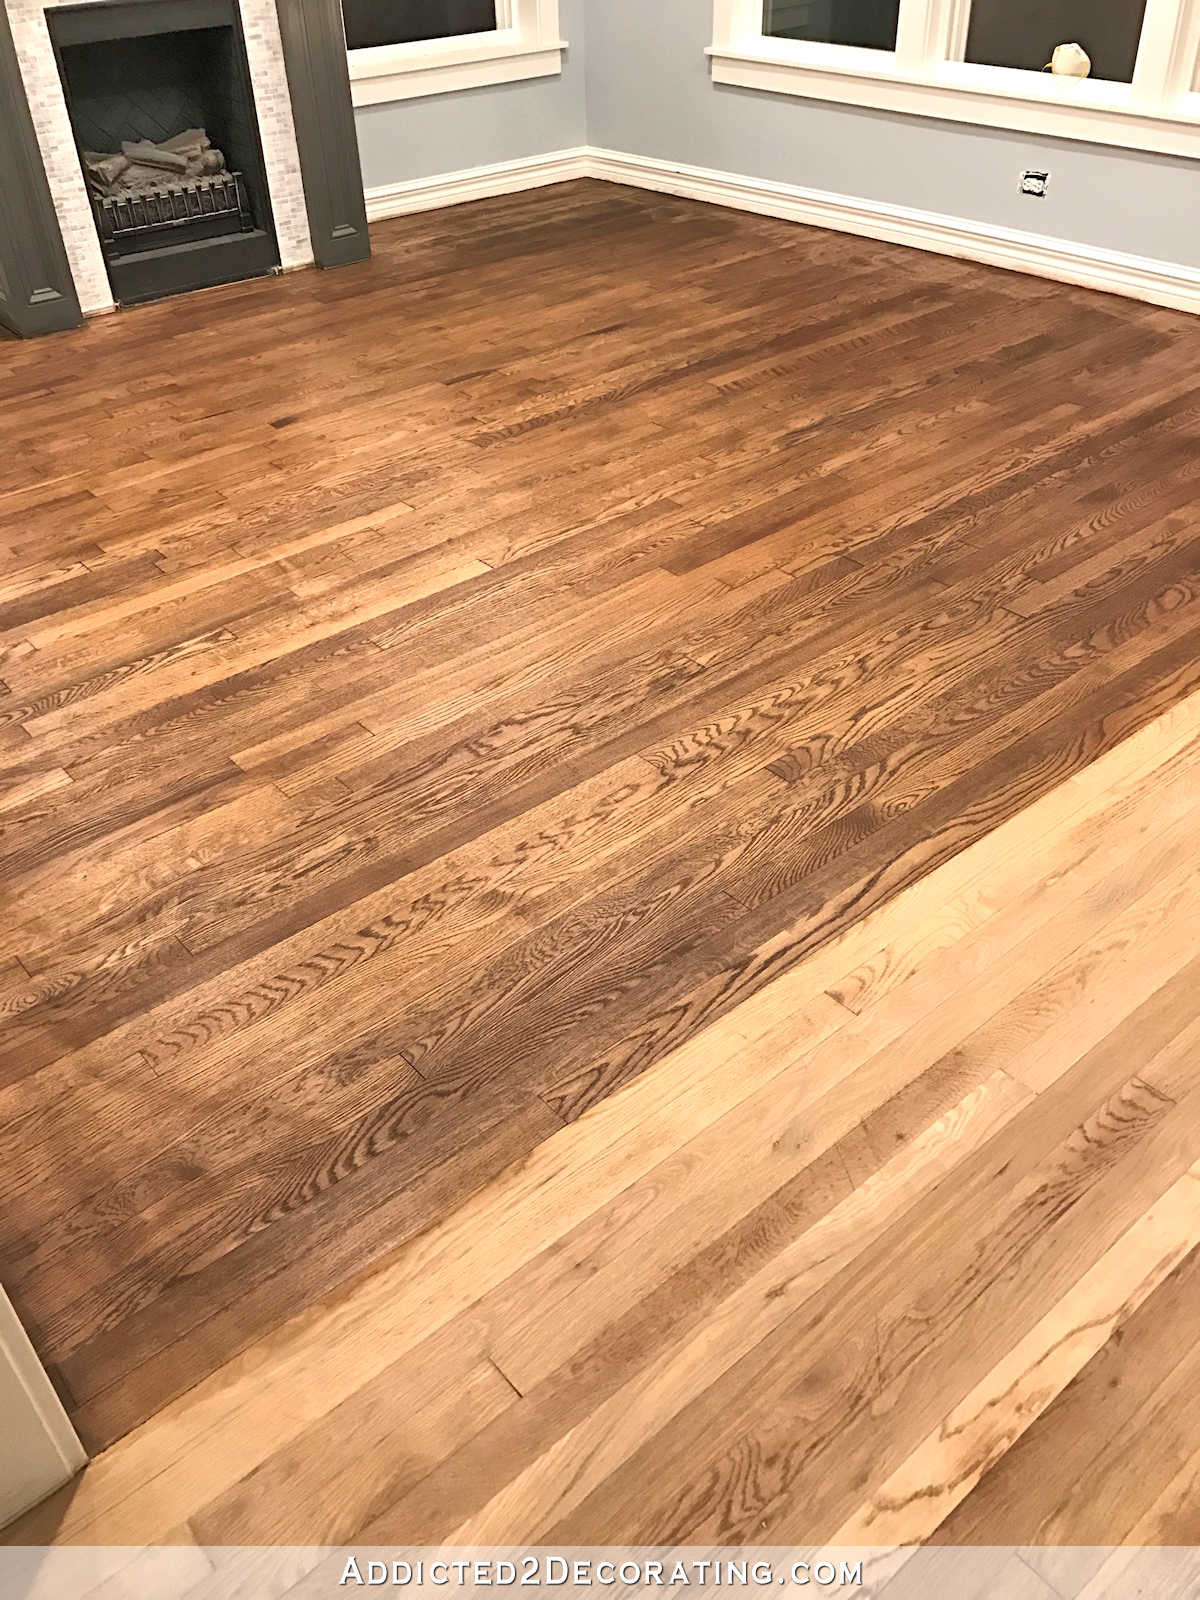 hardwood flooring denver co of adventures in staining my red oak hardwood floors products process with staining red oak hardwood floors 7 stain on the living room floor